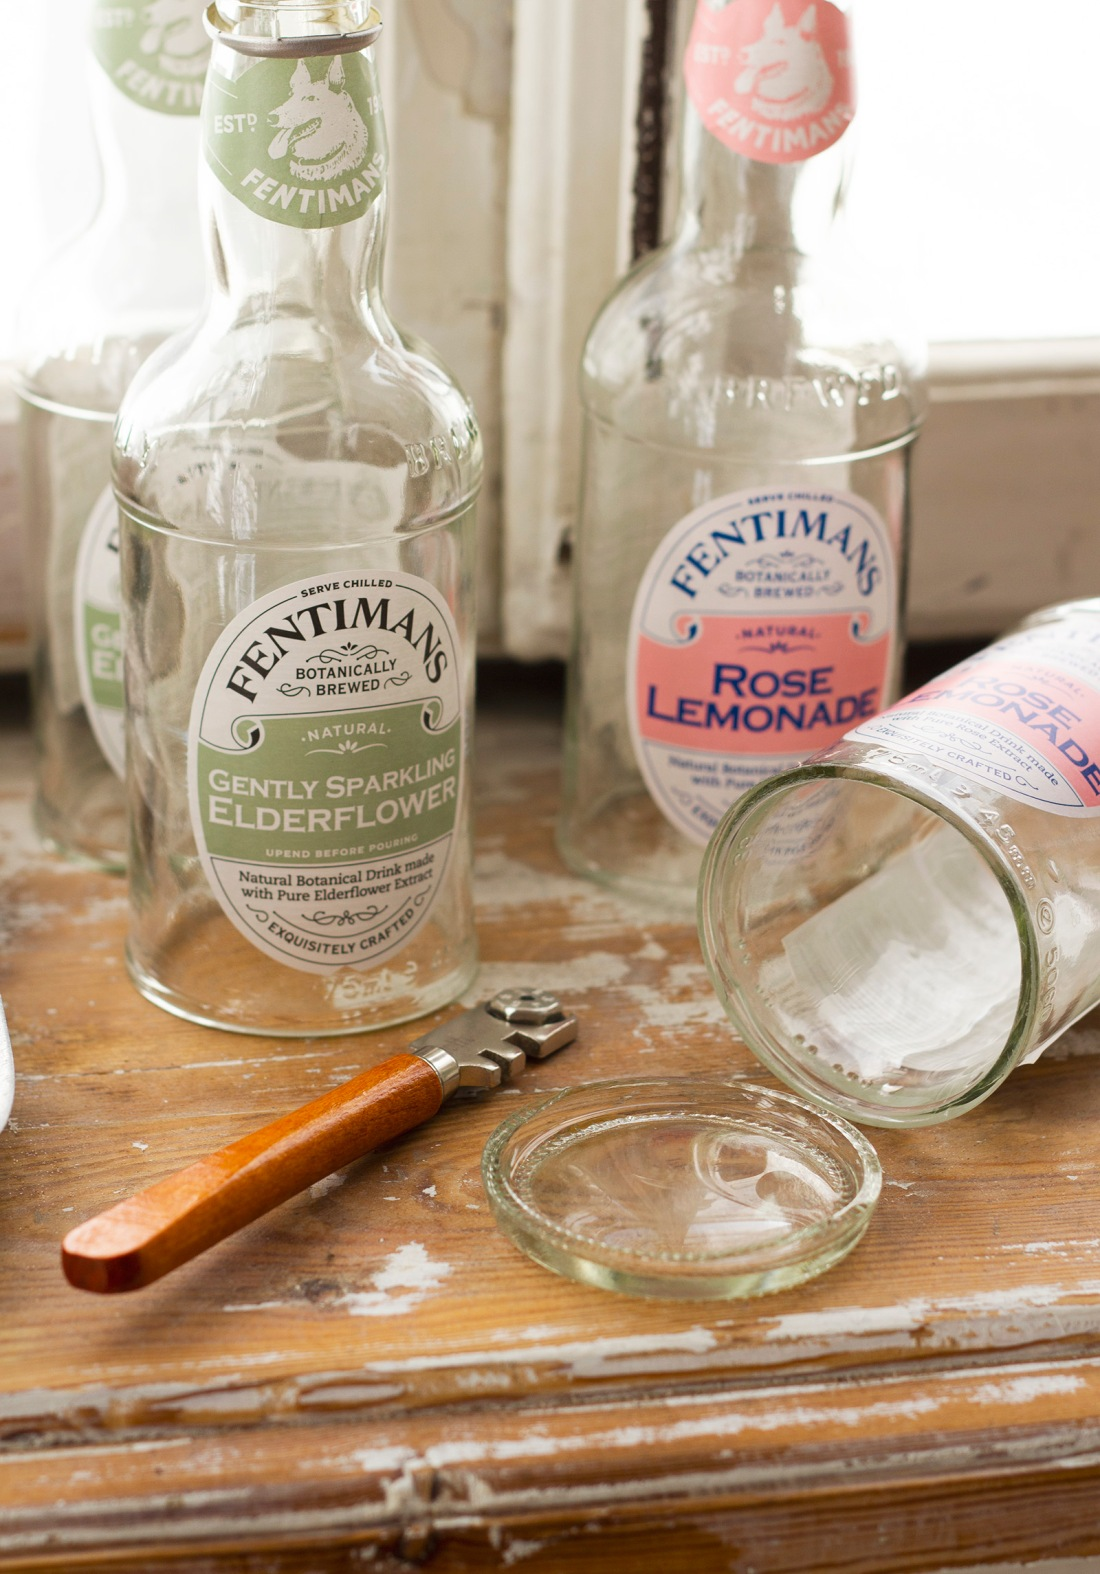 fentimans-white-glass-bottle-removed-bottom-glass-cutter